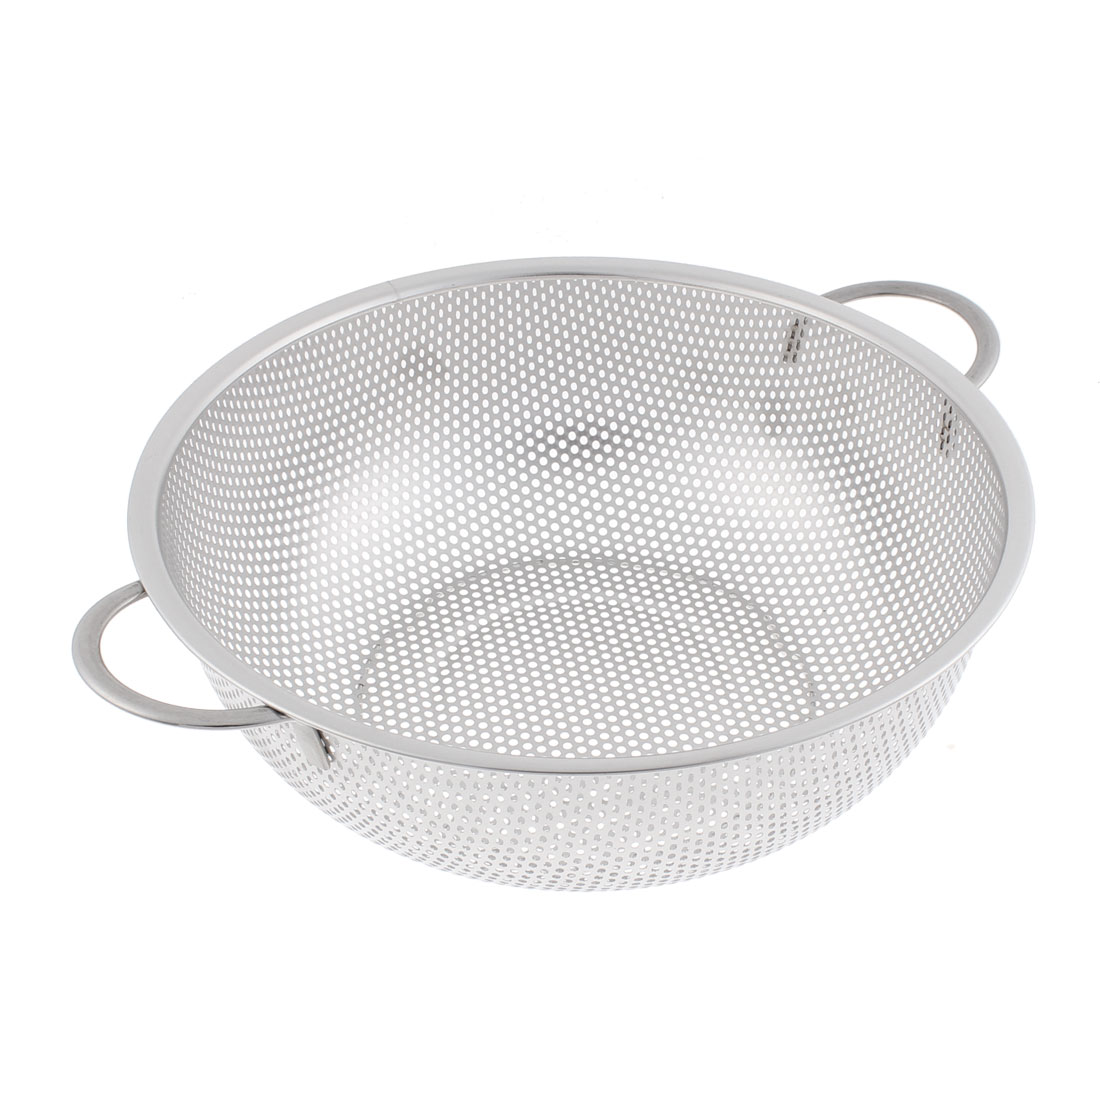 Kitchen Fruit Vegetable Sink Washing Basket Strainer 25.5cm Dia